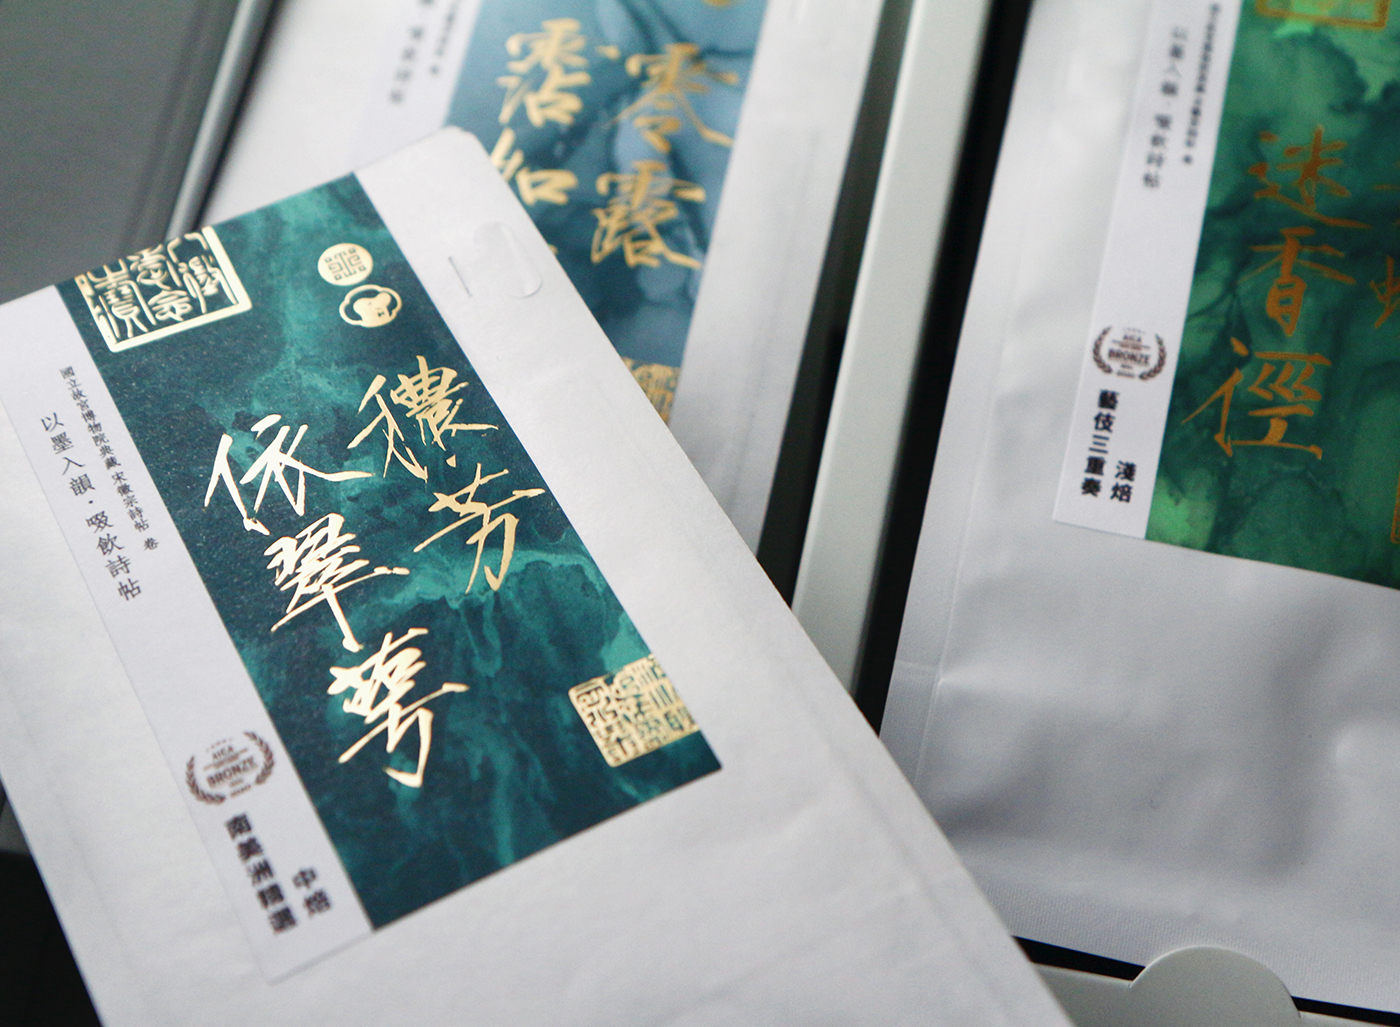 Lung-Hao Chiang Packaging Design for Cama Café – Taste the Art of Poetry